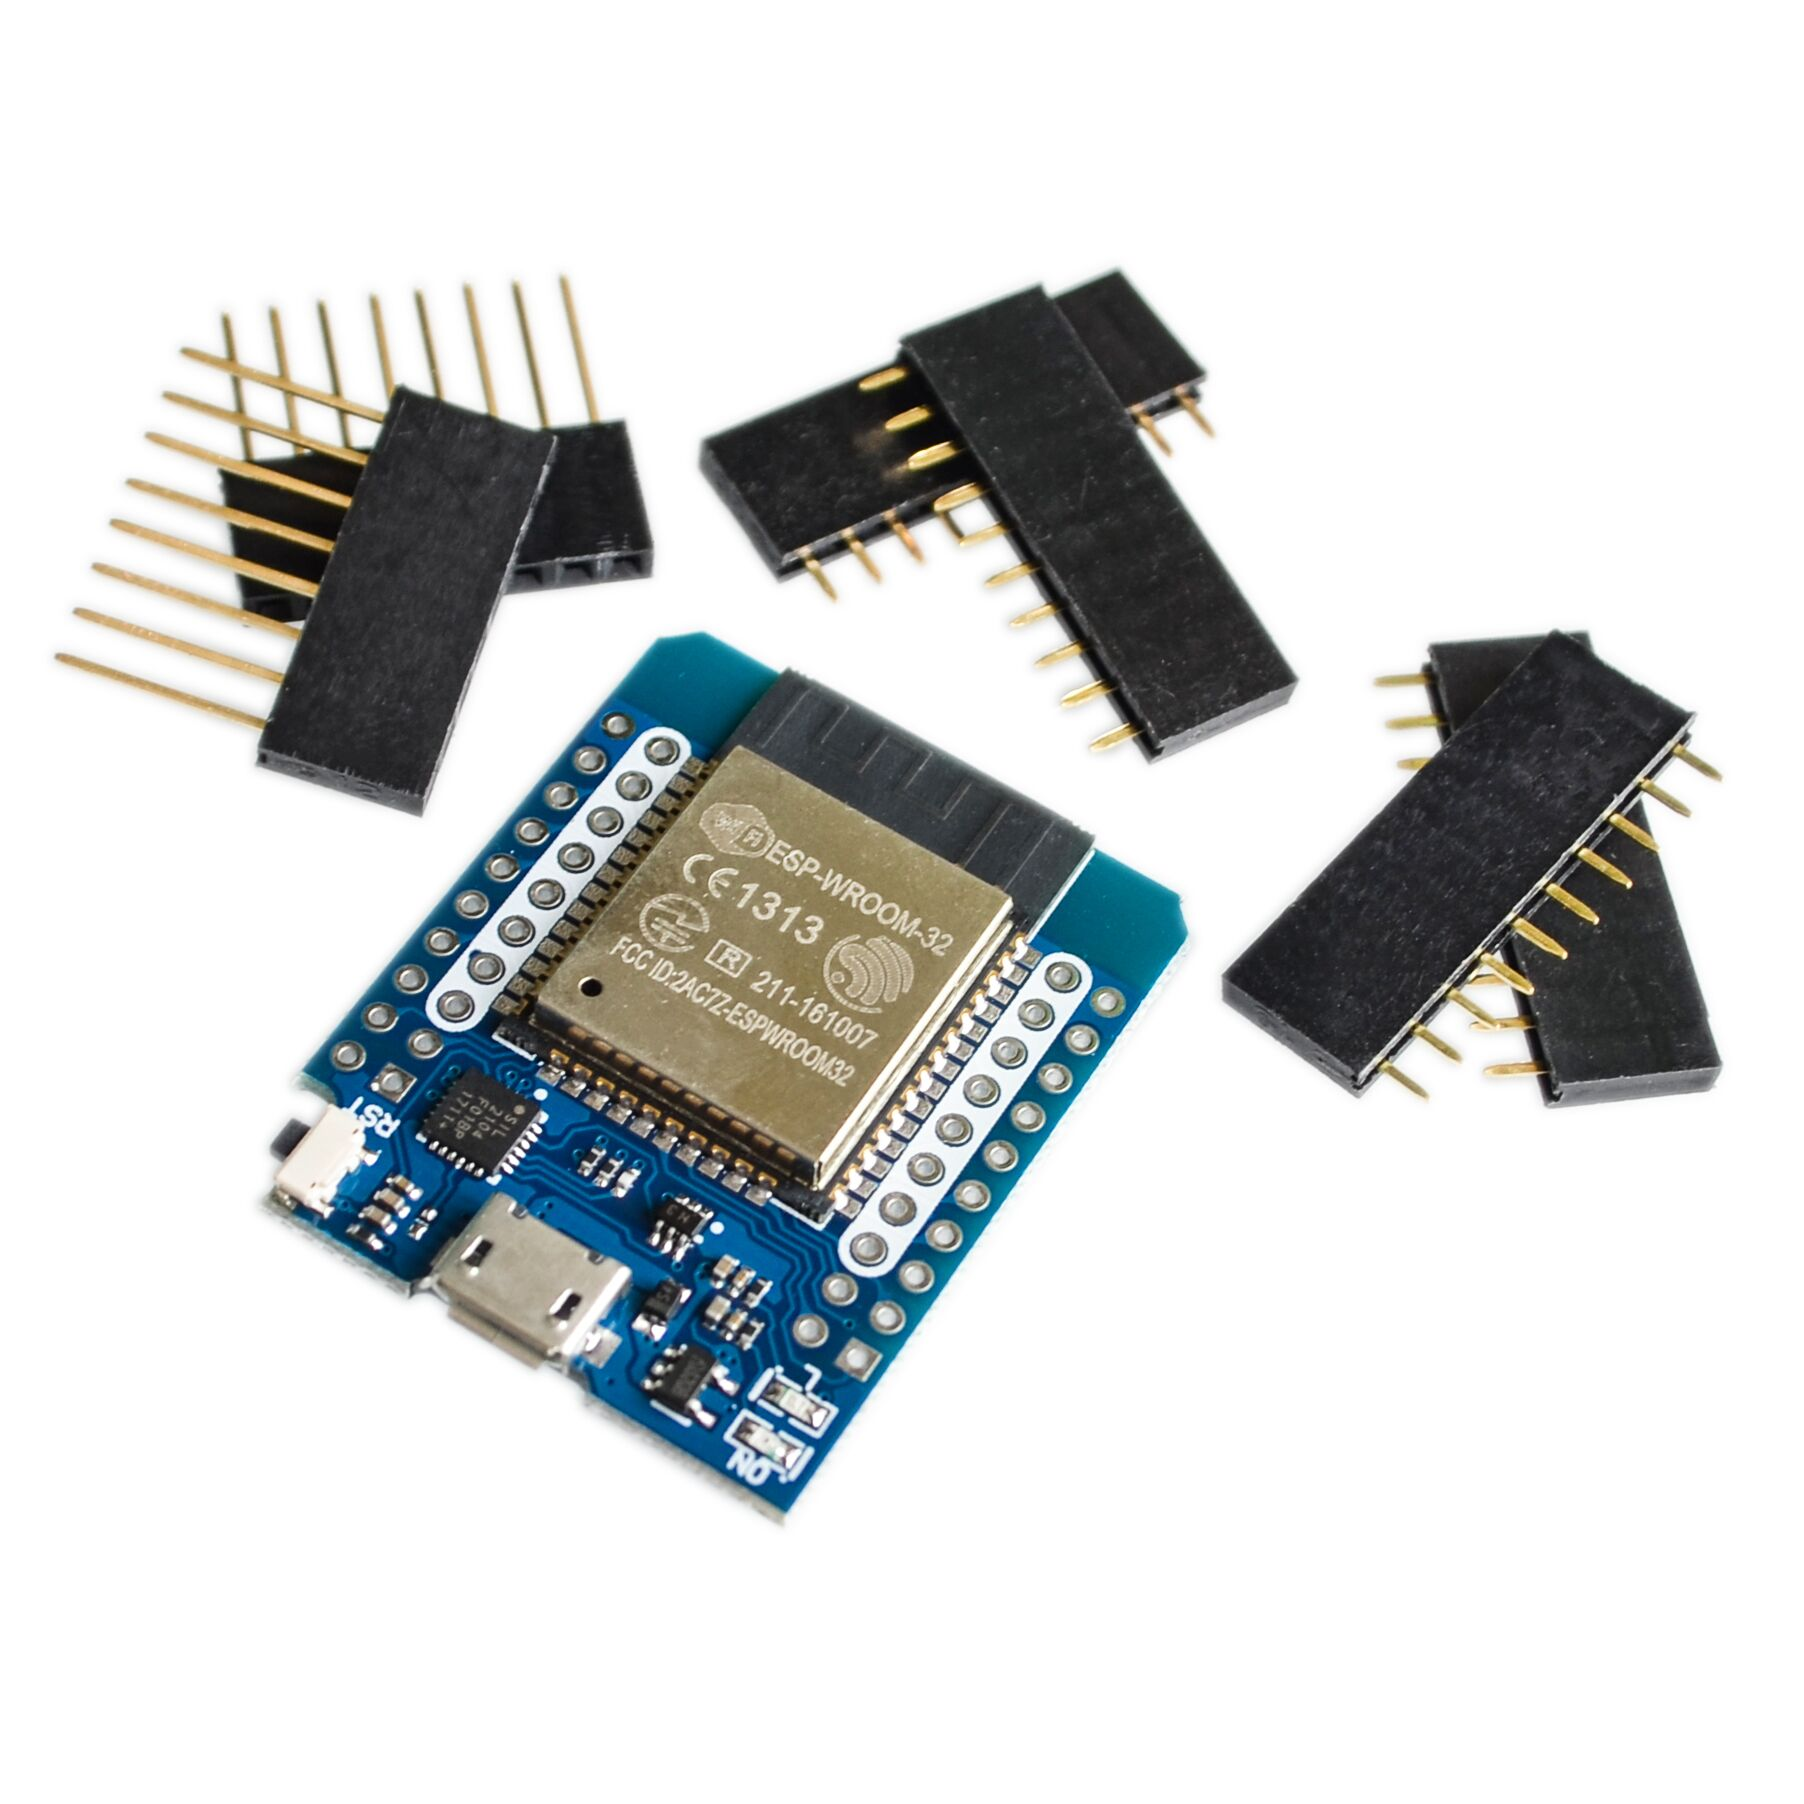 US $4 08 5% OFF|LIVE D1 mini ESP32 ESP 32 WiFi+Bluetooth Internet of Things  development board based ESP8266 Fully functional-in Integrated Circuits